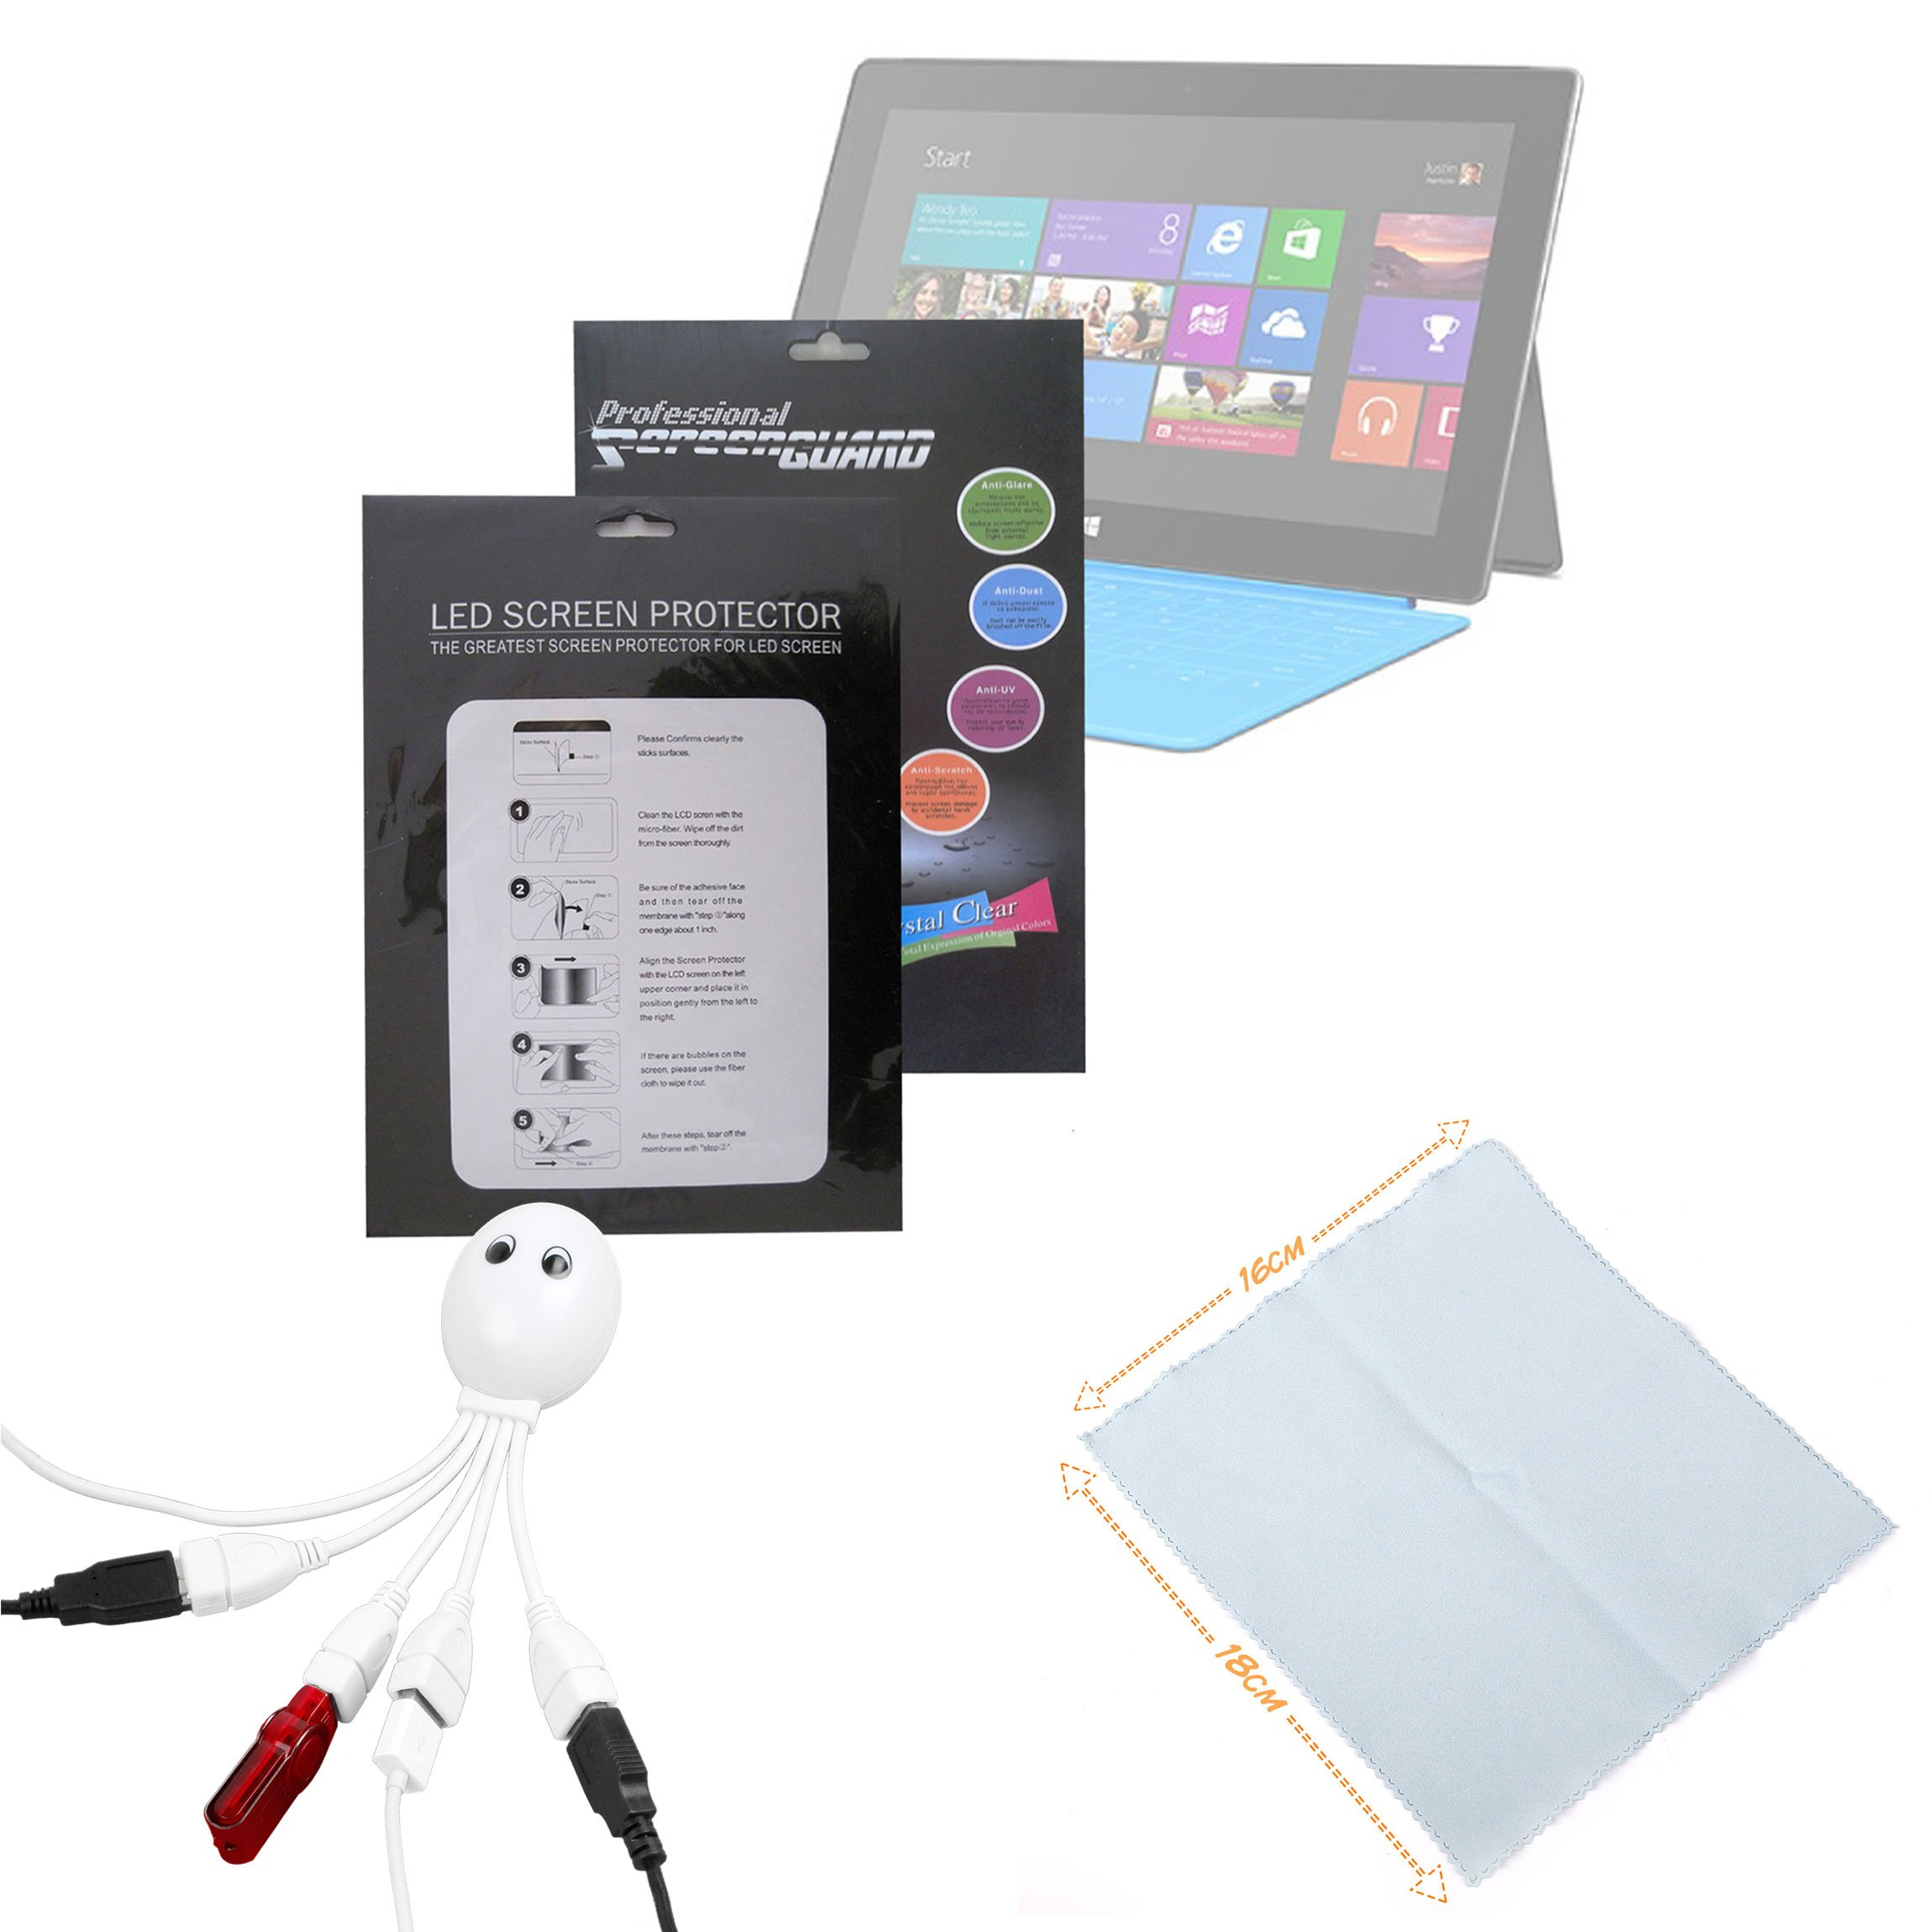 DURAGADGET Microsoft Surface Windows RT Tablet Accessory Kit: High Quality Microsoft Surface (8GB, 16GB, 32GB, 64GB, 128GB) 10.6'' Clear Screen Protector Guard + BONUS : Cleaning Cloth + Octopus USB Hub